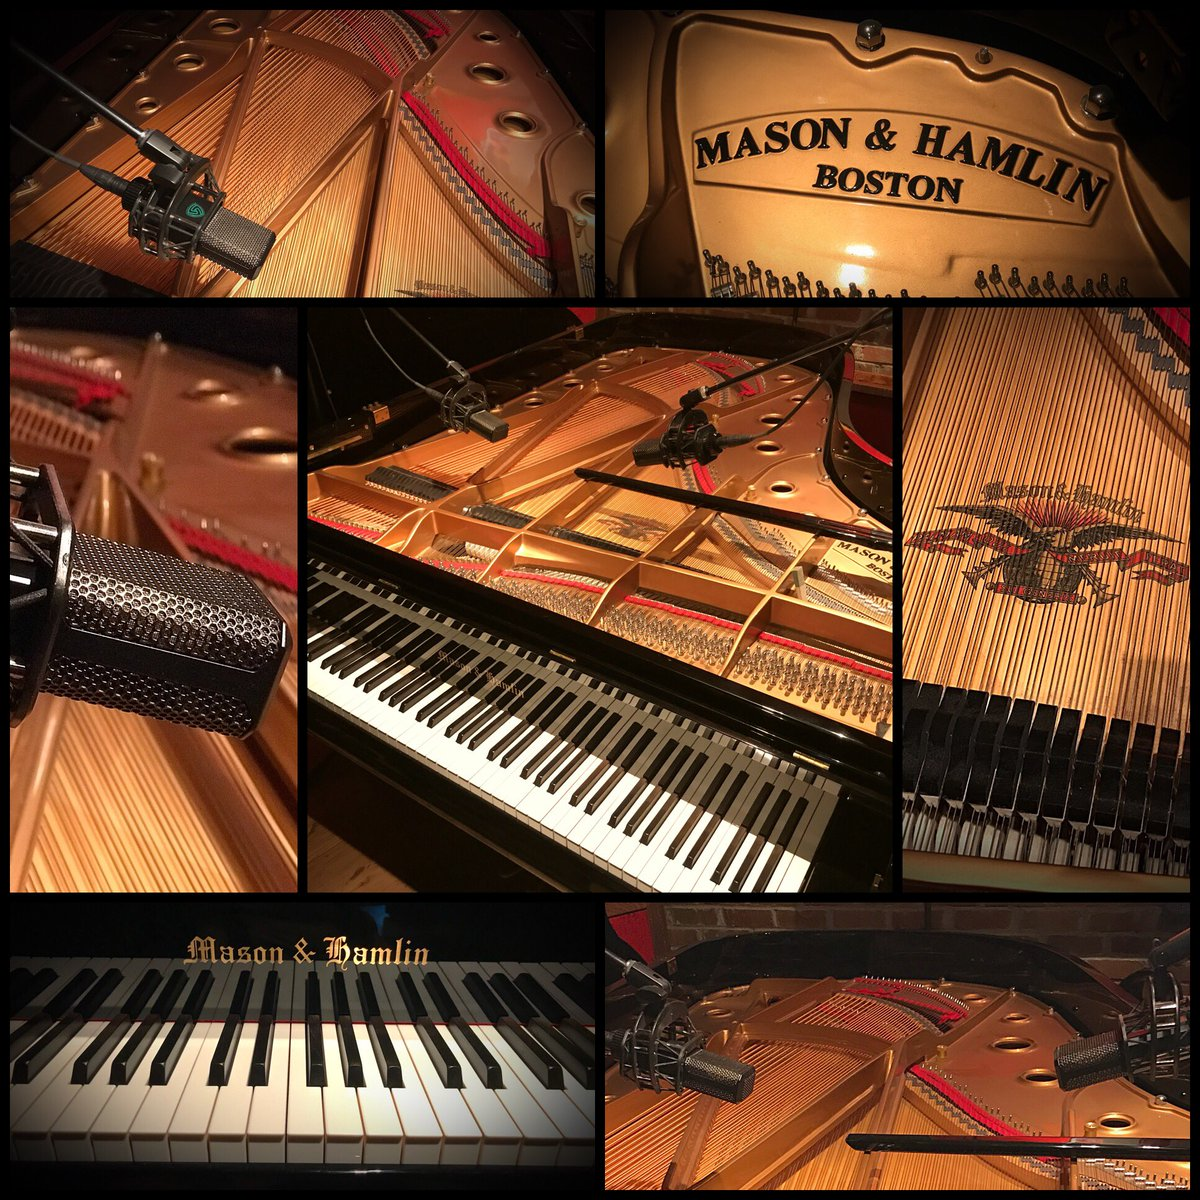 Brian Culbertson On Twitter Last Day Of Piano Tracking Colors Love I So Playing This Masonhamlin Model BB 7 Grand Its Amazing